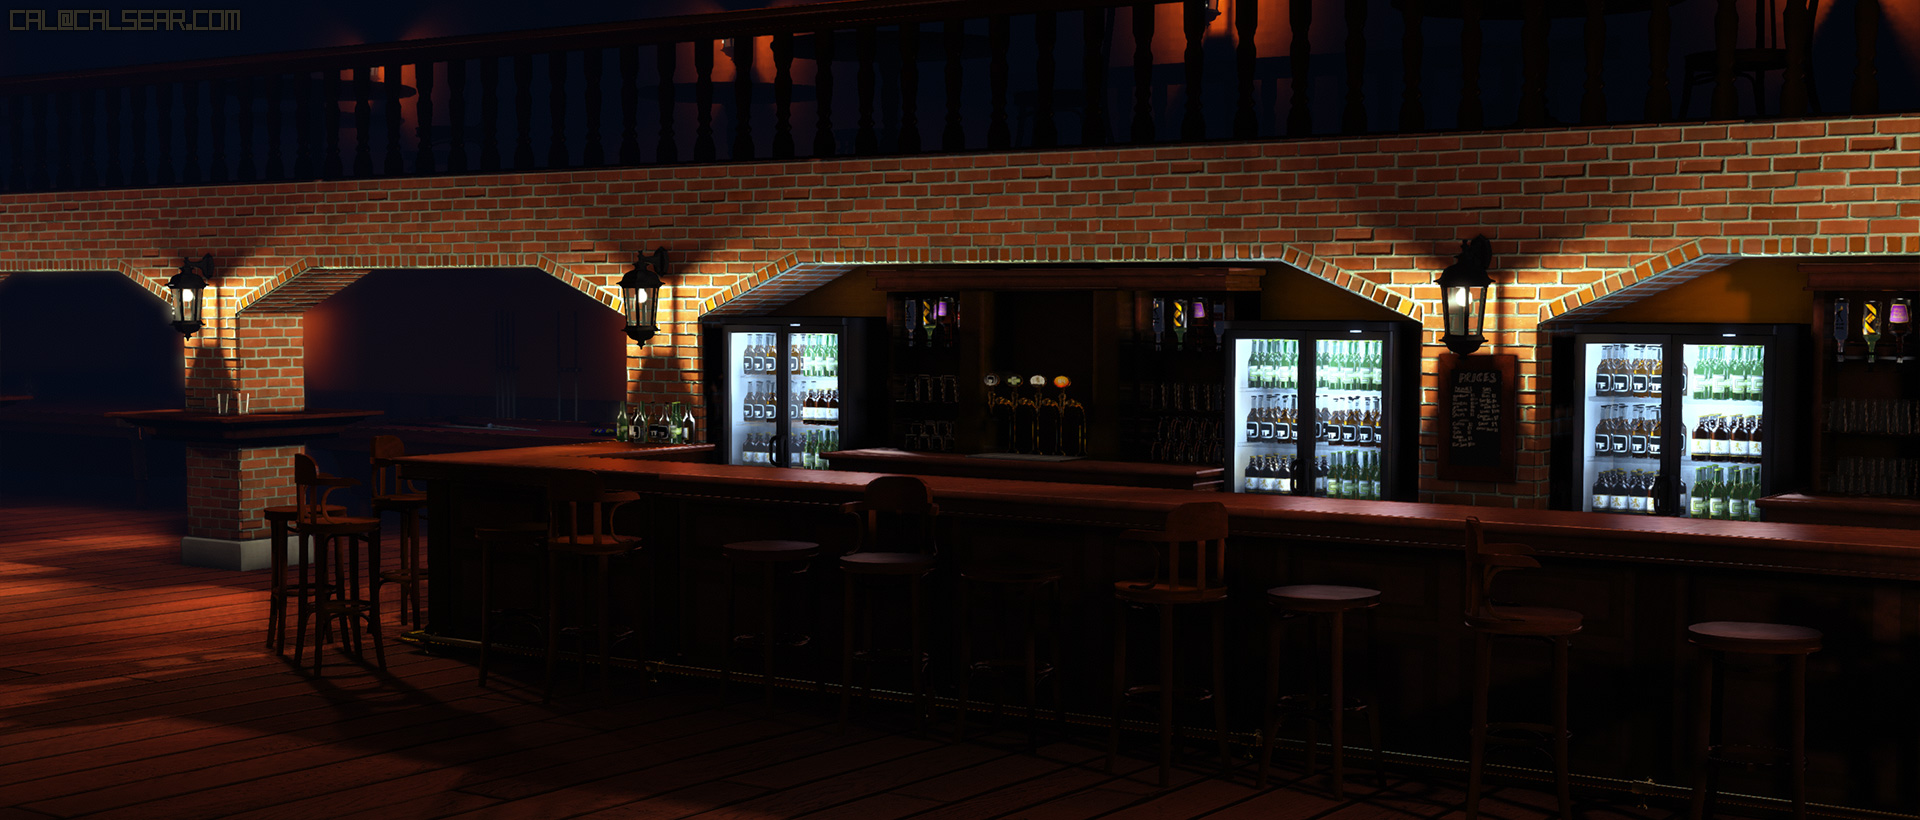 View more info on Downtown Bar, a Streets of Rage 2 inspired environment